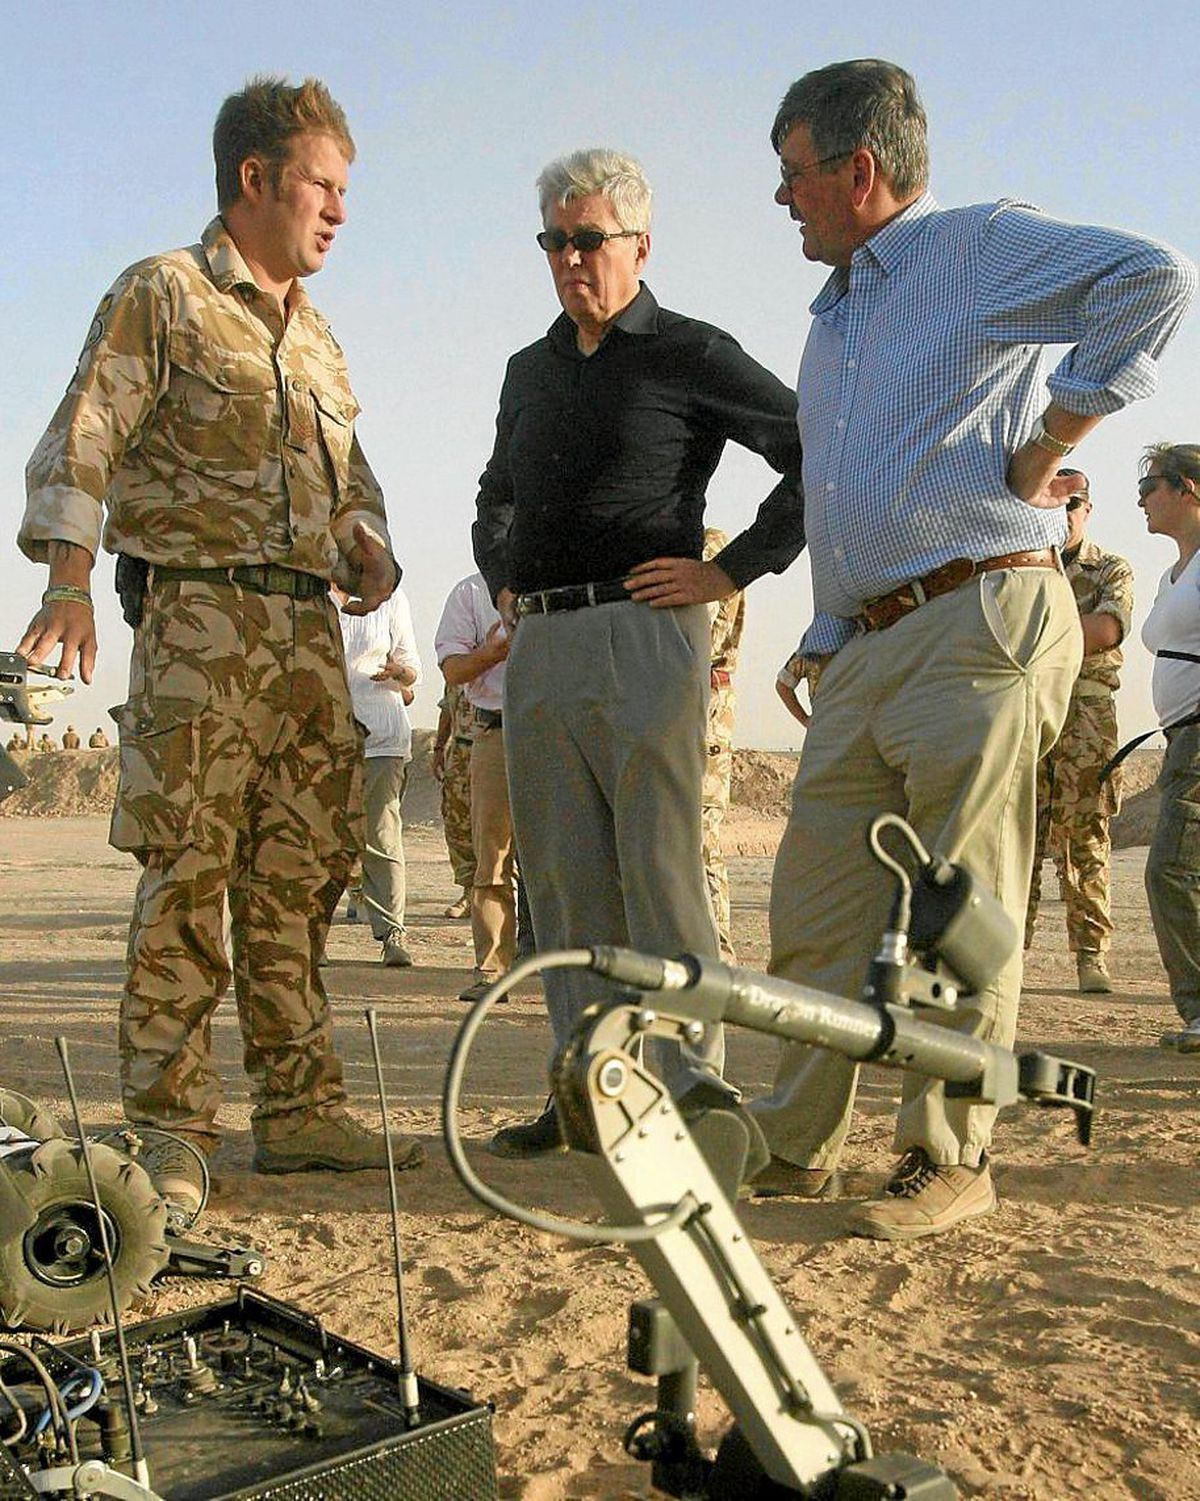 Meeting then ministers Bob Ainsworth and Alan Johnson at Camp Bastion